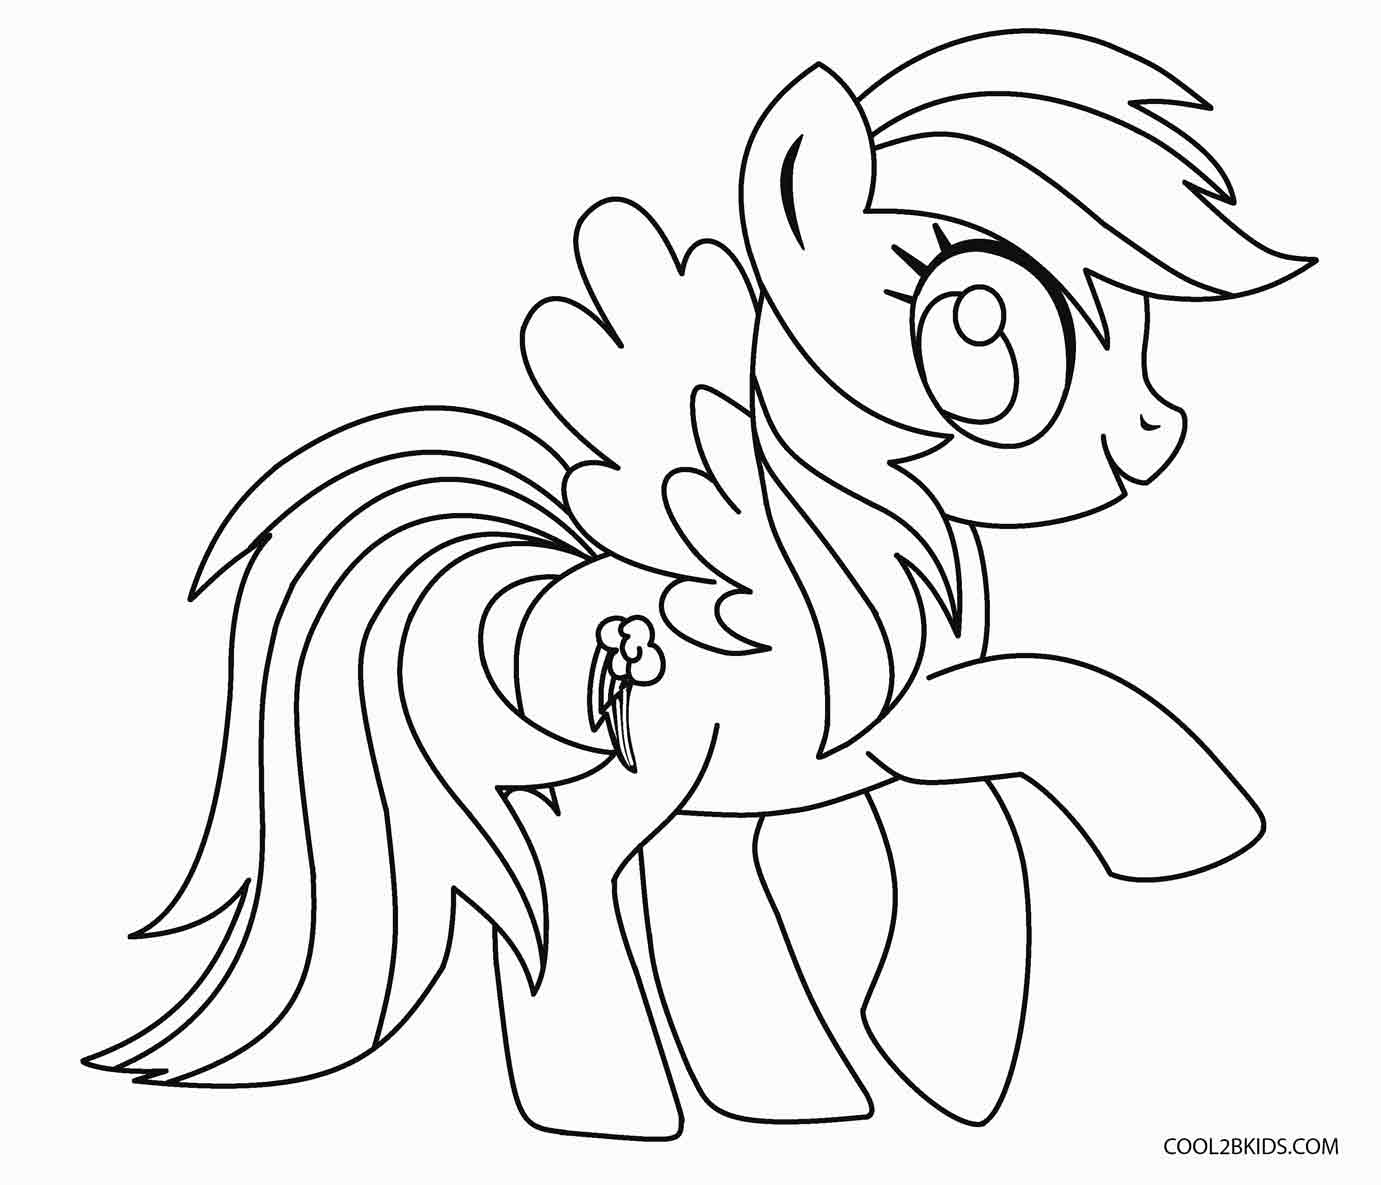 coloring cute little pony cute my little pony coloring pages at getcoloringscom coloring little cute pony